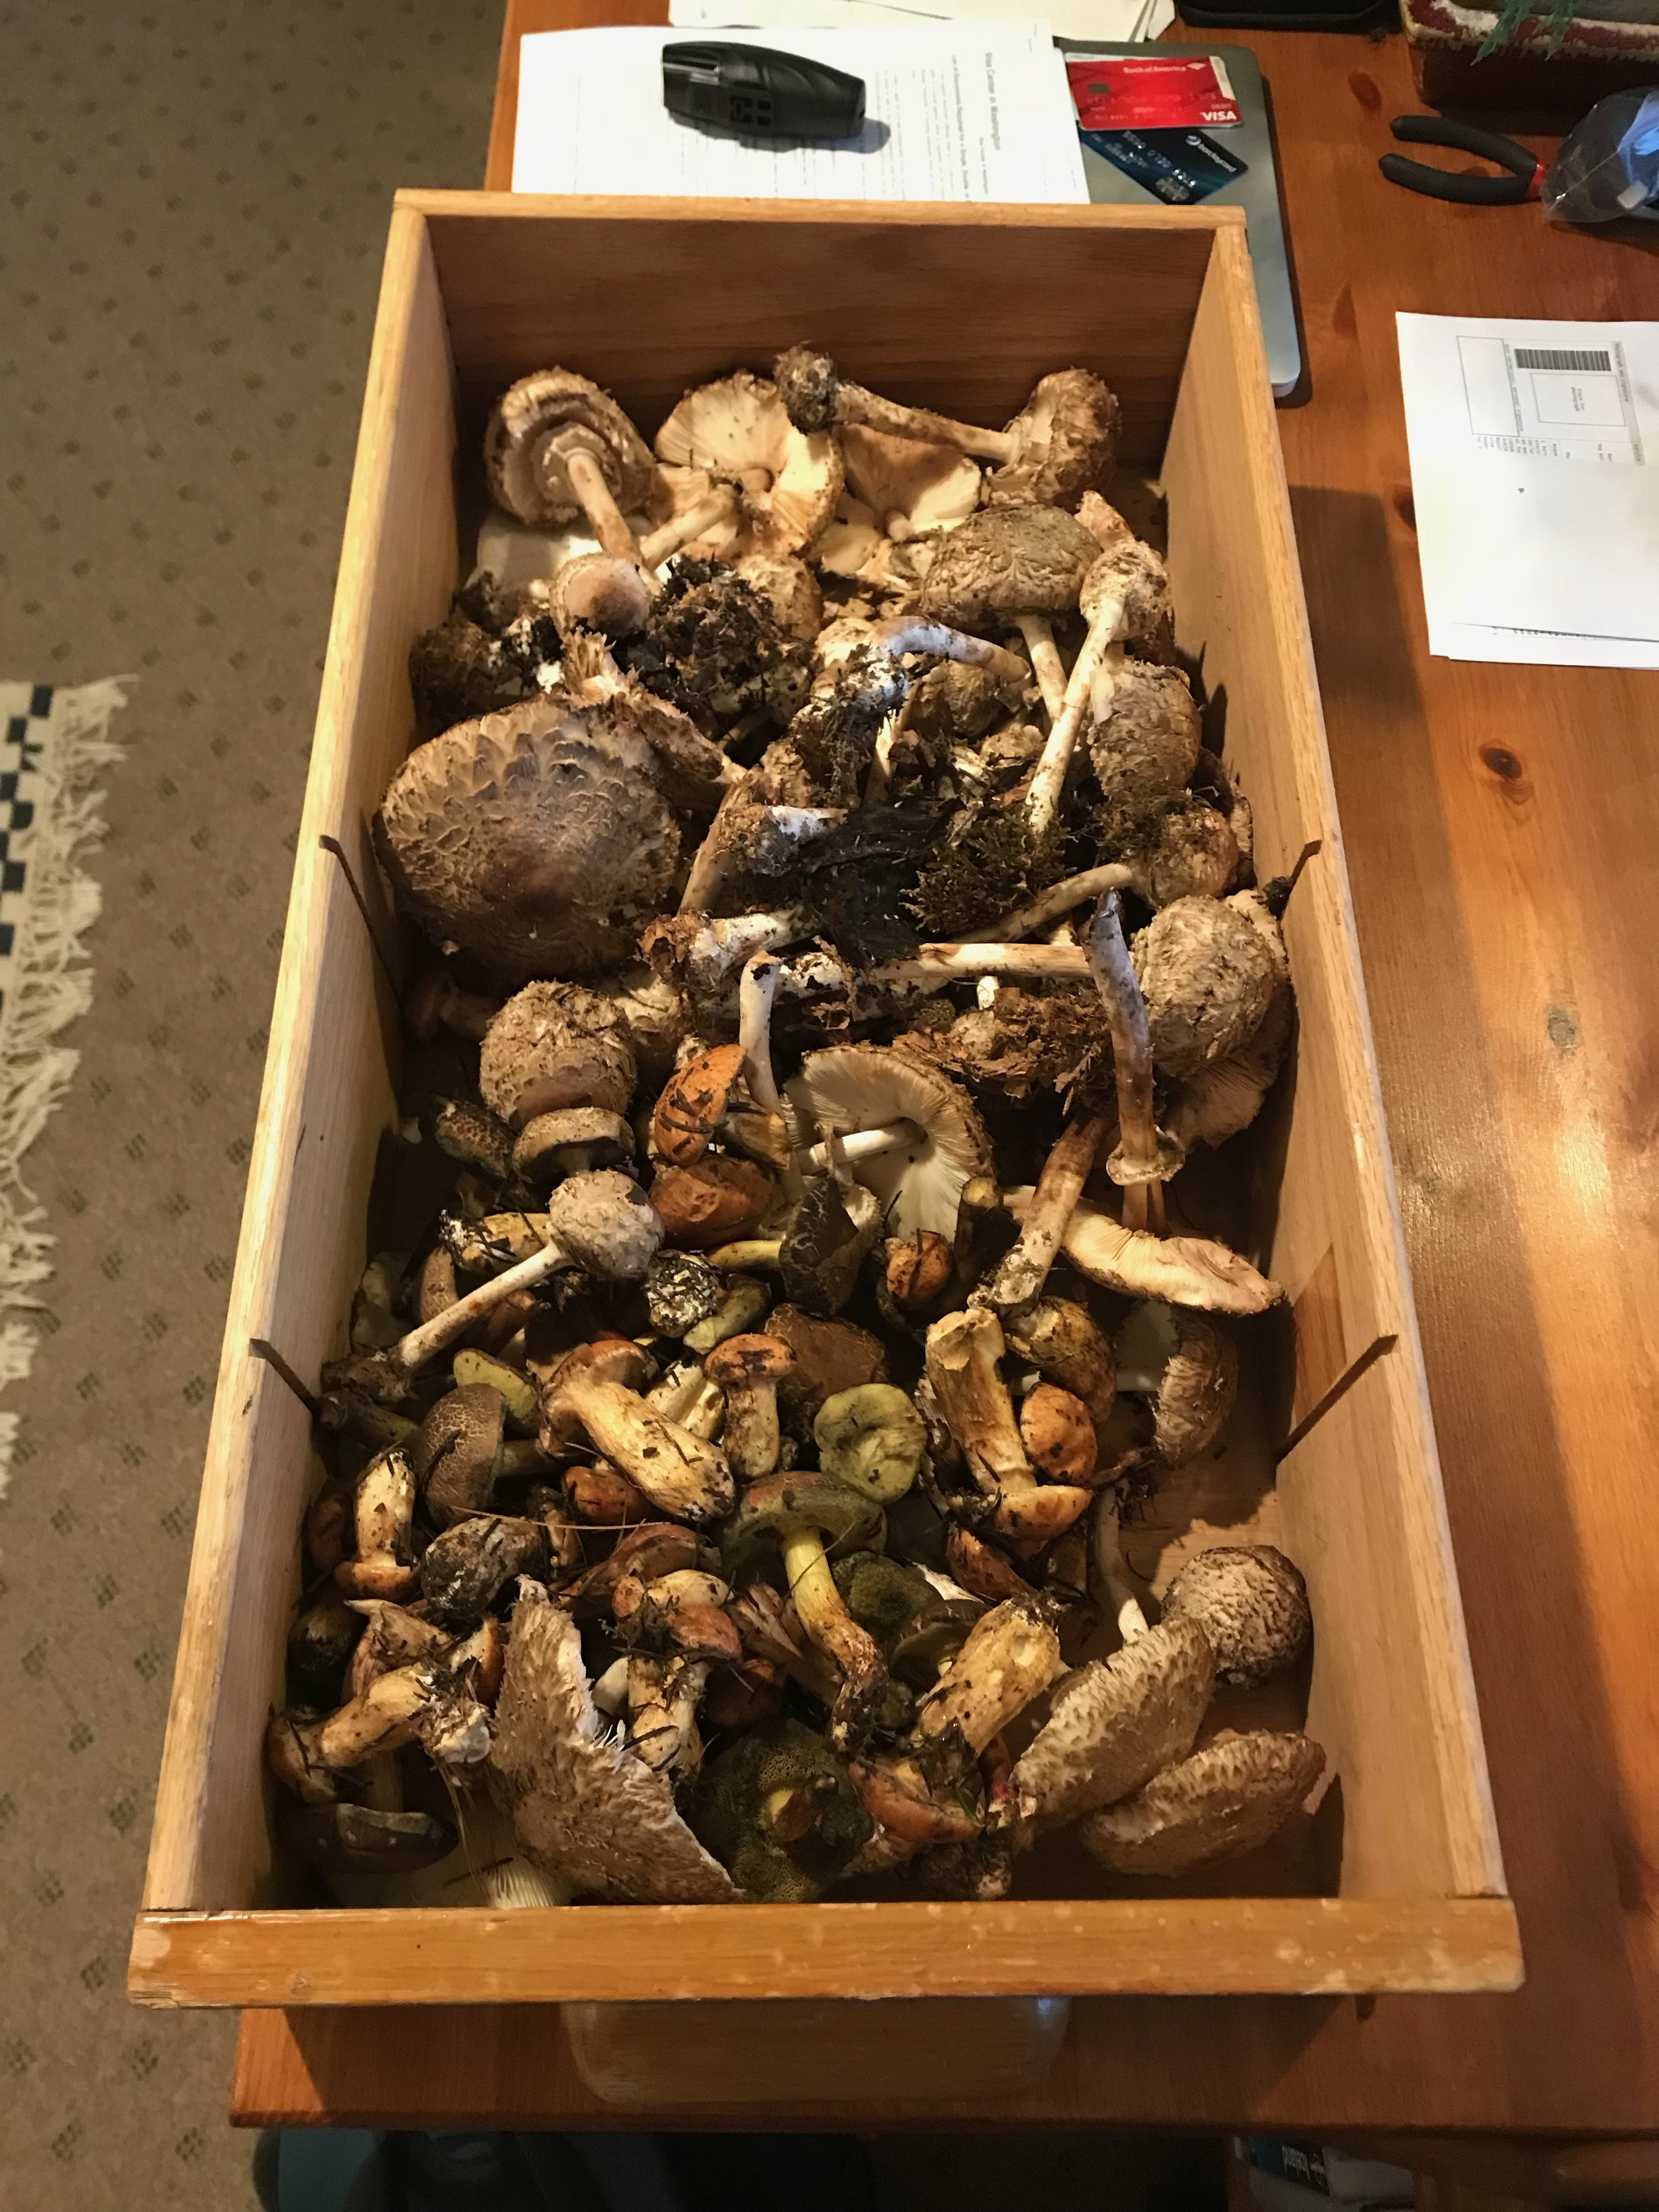 While we were running at Discovery Park one day, my partner and I found an INCREDIBLE array of edible mushrooms! Needless to say, the running stopped, and was replaced by us frantically grabbing all of the shaggy parasols, slippery jacks, and red cracked boletes we could carry.